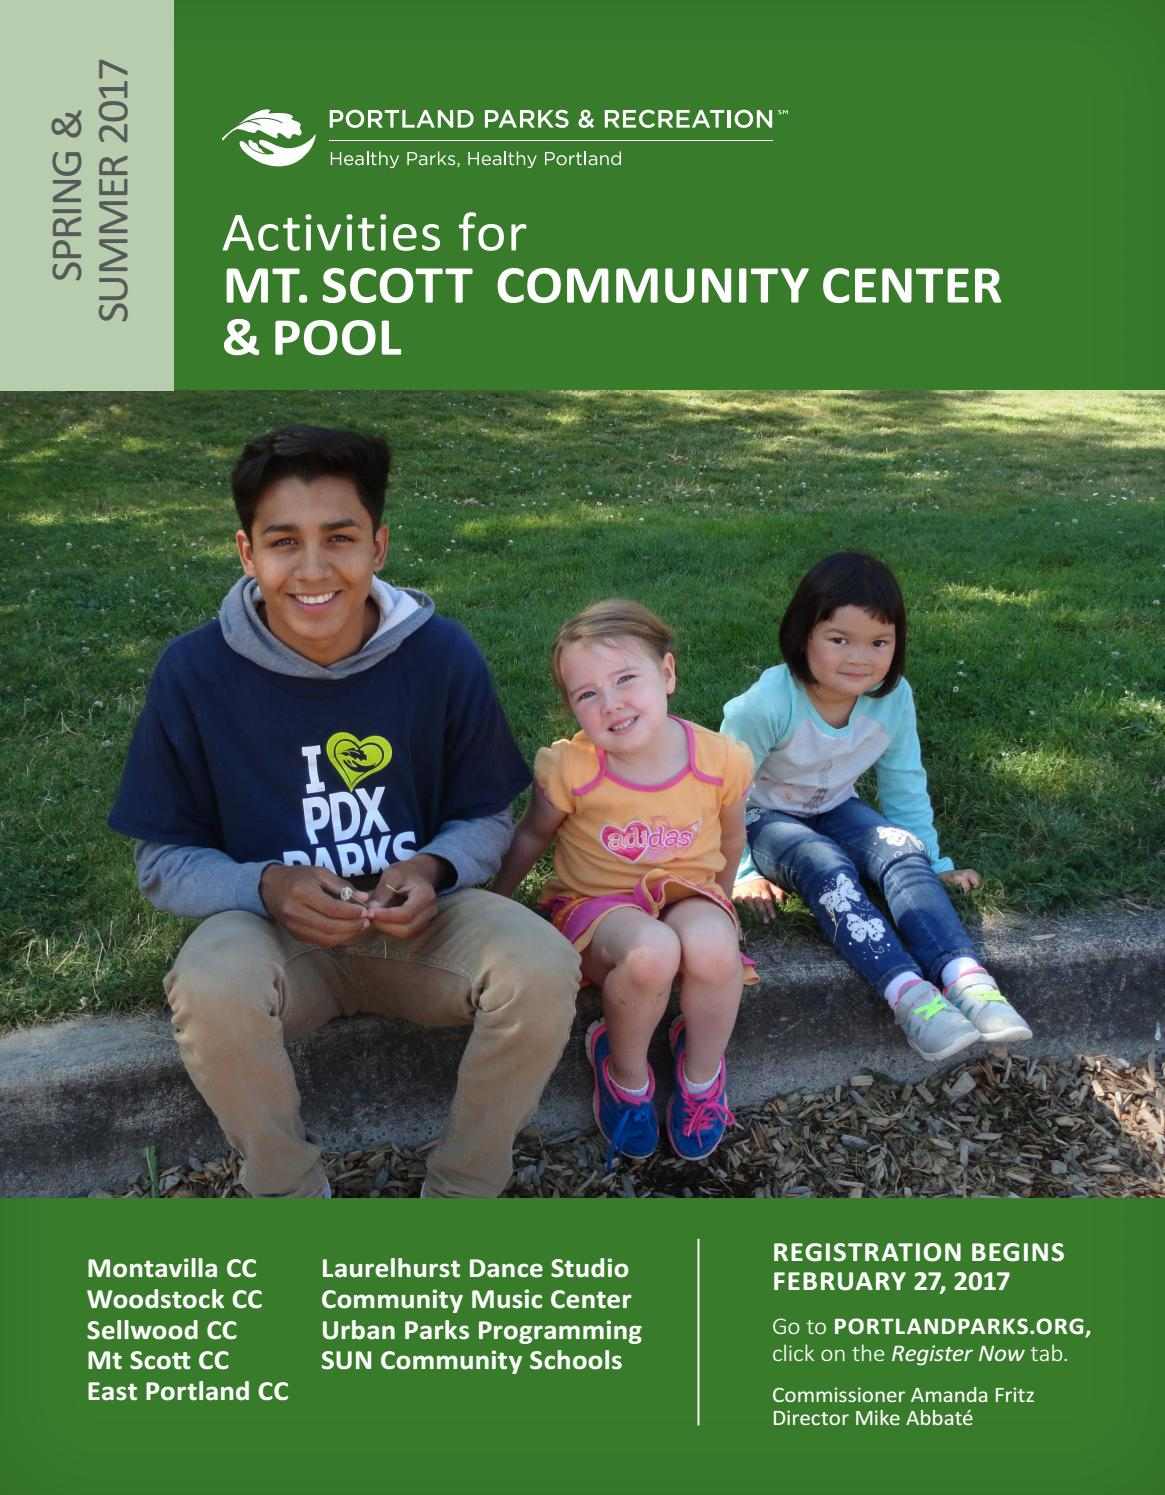 Mt Scott Community Center Spring Summer 2017 By Portland Parks Step 3 Weaving The Relay Modules With Dancing Lights Recreation Issuu